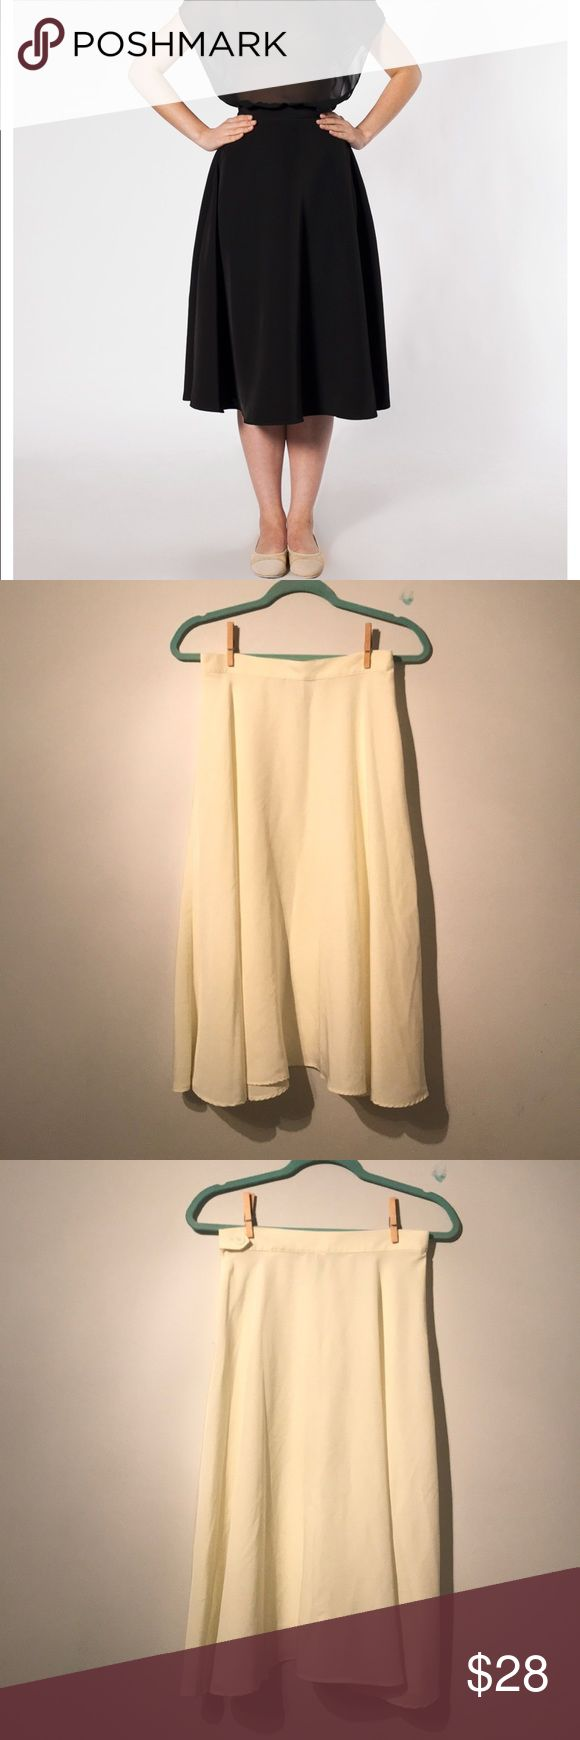 American Apparel mid-length circle Skirt American Apparel mid-length circle Skirt Fabric: Silk  Color: Pearl  Size: M  Perfect conditions First pictures shows up the same skirt in different color, I couldn't find one of the same color to upload. American Apparel Skirts Midi